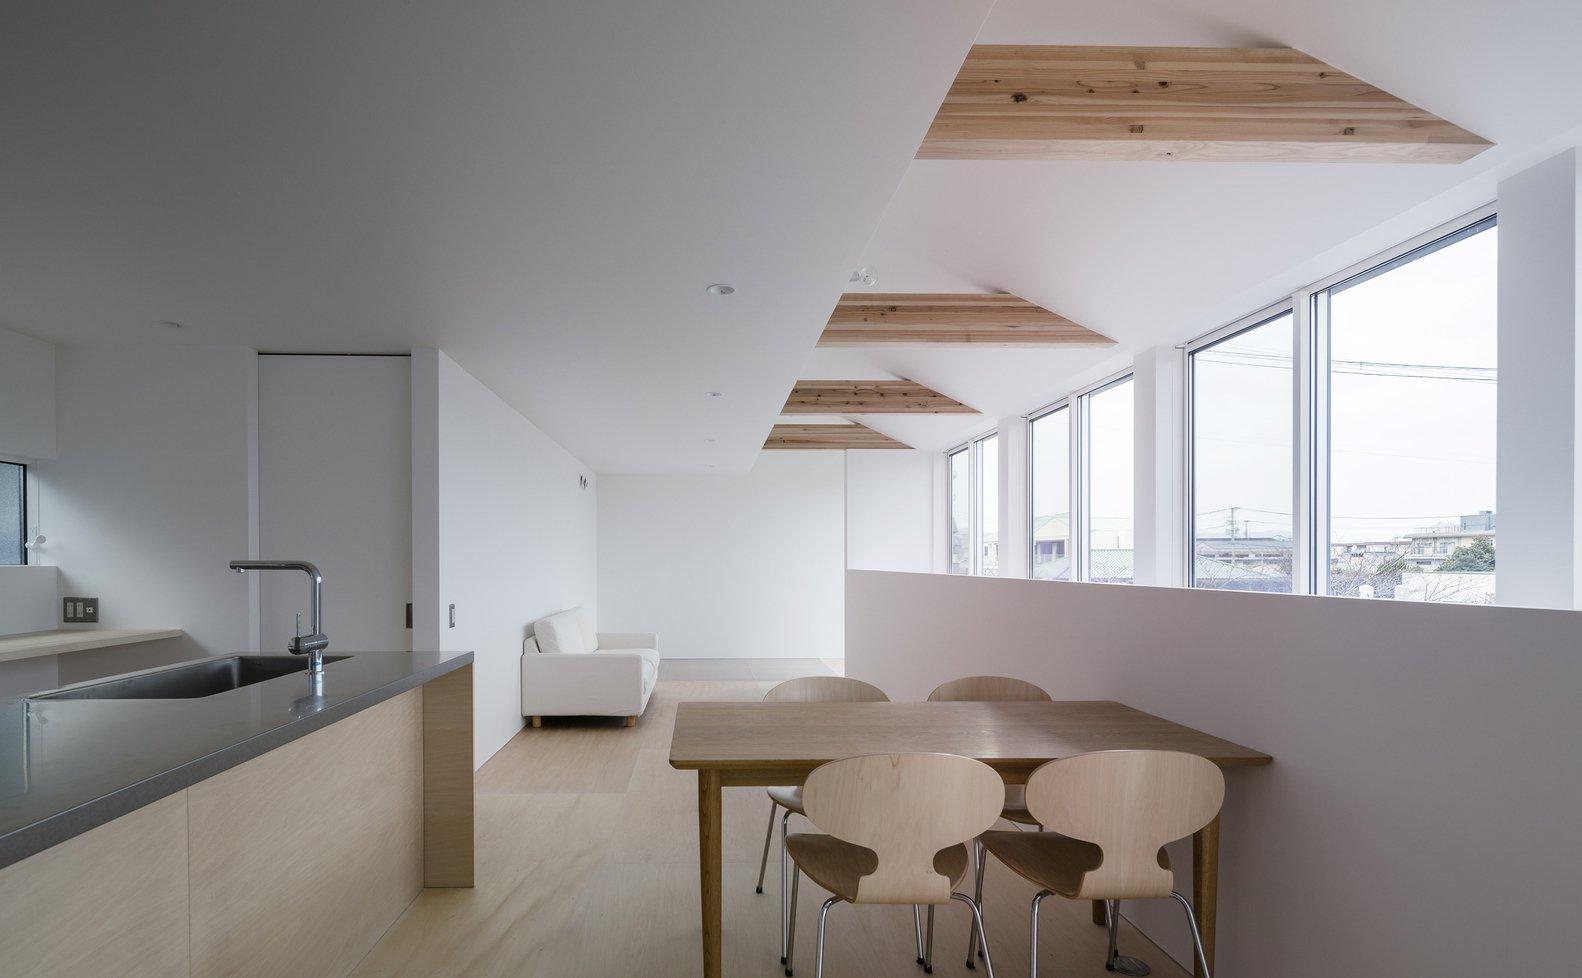 Dining Room, Light Hardwood Floor, Chair, Recessed Lighting, and Table  Photos from House in Futako by Yabashi Architects & Associates